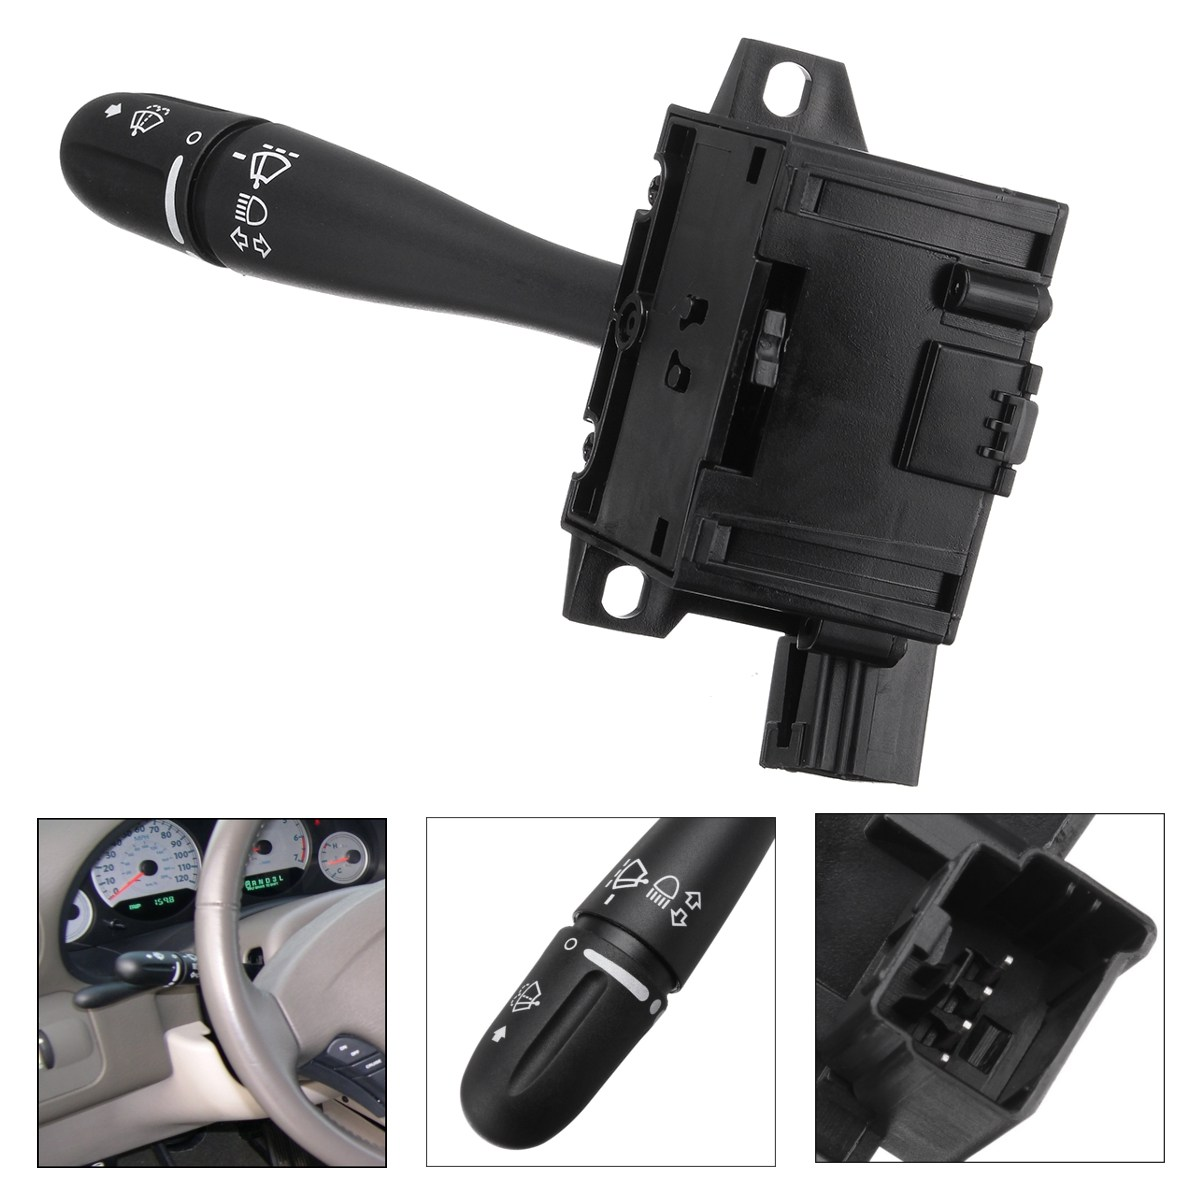 Steering Column Turn Signal Headlamp Switch Wiper Blade Unit For Dodge Grand Caravan Chrysler Voyager Town Country 2001 2002 fuel pump module assembly for 1996 2000 chrysler voyager town country dodge caravan plymouth voyager e7094m ty 122a